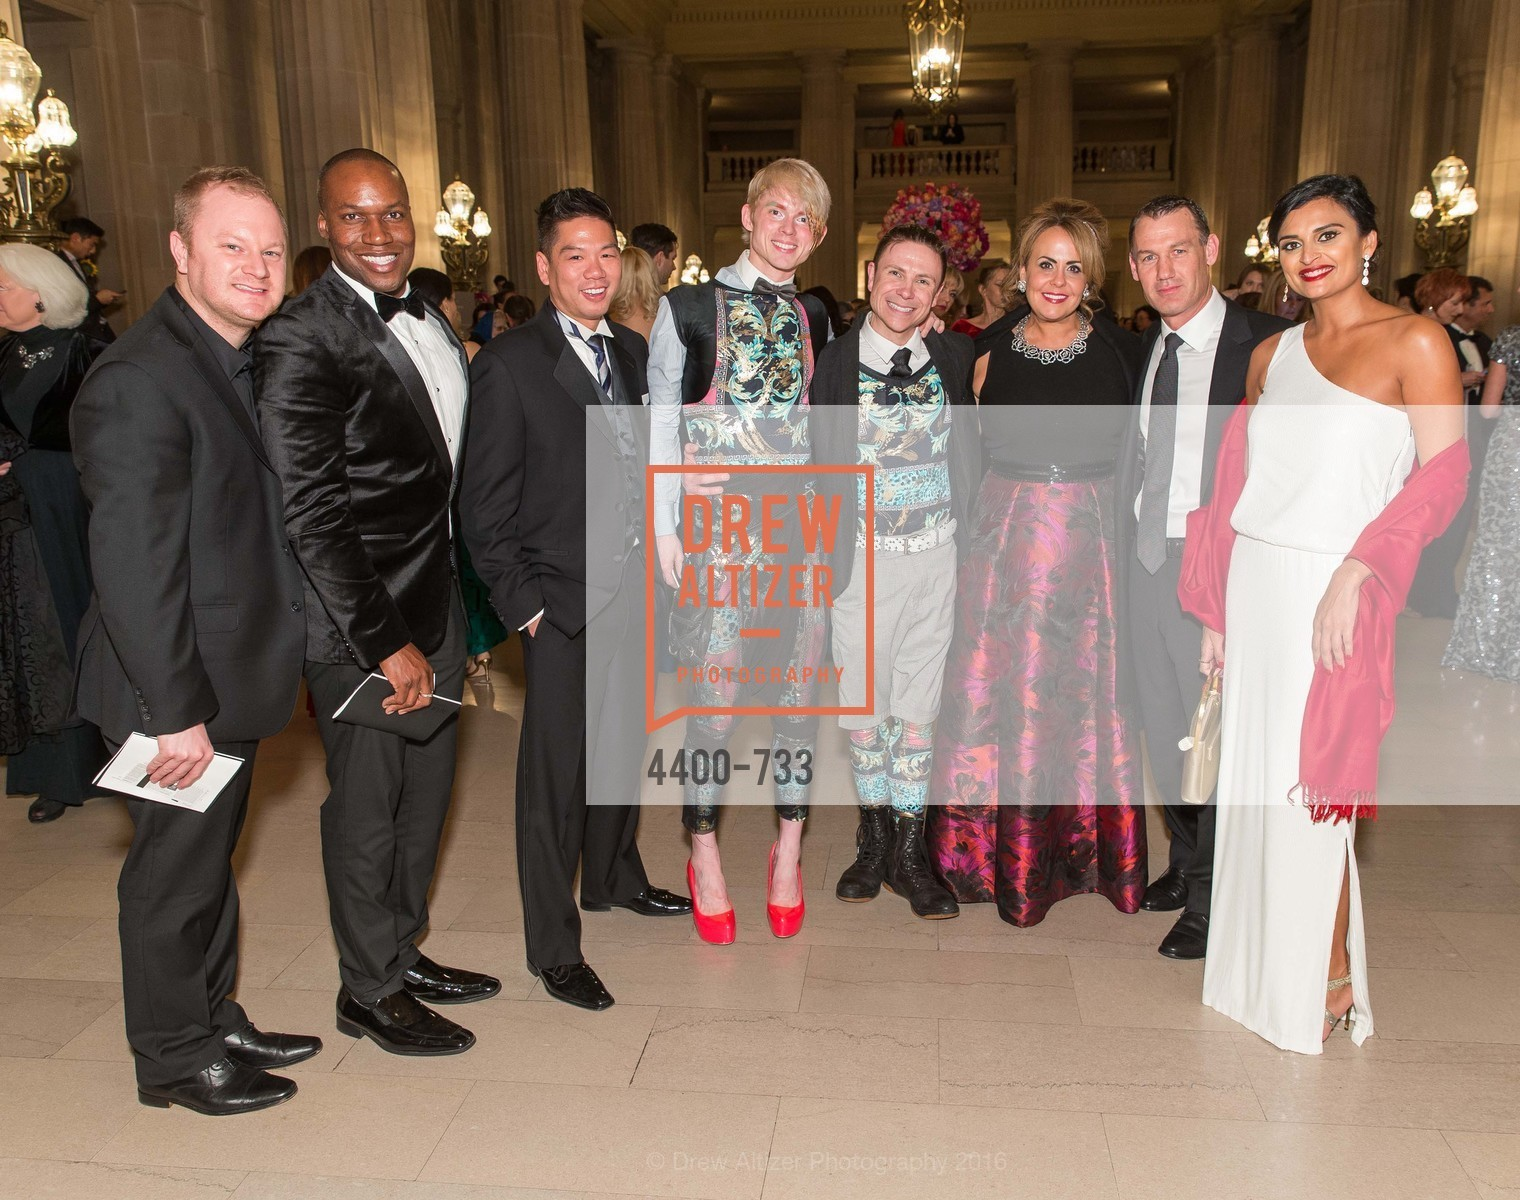 Chris Dillard, Jayson Johnson, Edton Mock, Christian Squires, Robert Dekkers, Ashley Heller, Wade Burgess, Rupal Patel, San Francisco Ballet 2016 Opening Night Gala, San Francisco City Hall. 1 Dr Carlton B Goodlett Pl, January 21st, 2016,Drew Altizer, Drew Altizer Photography, full-service event agency, private events, San Francisco photographer, photographer California